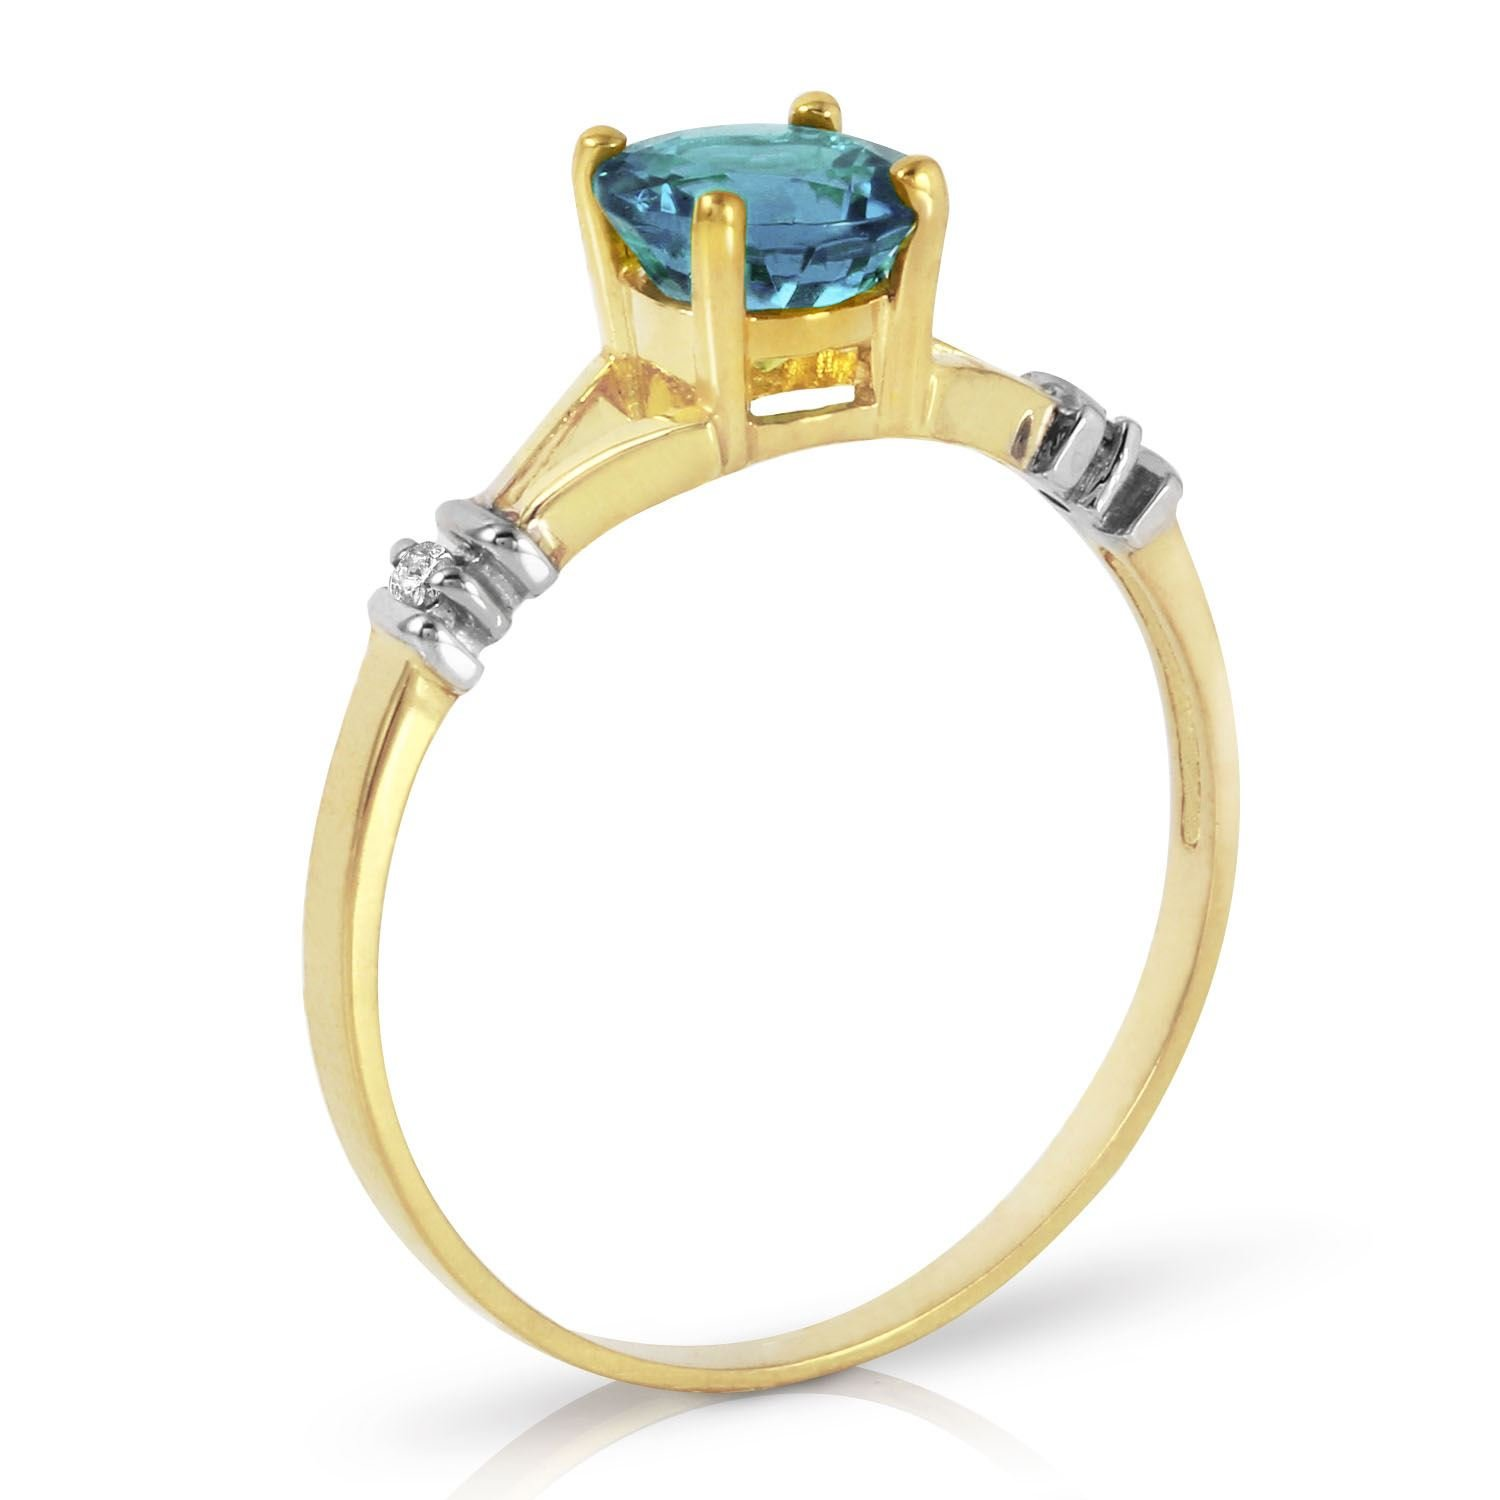 ALARRI 1.02 CTW 14K Solid Gold Love's Ingredient Blue Topaz Diamond Ring With Ring Size 11 by ALARRI (Image #2)